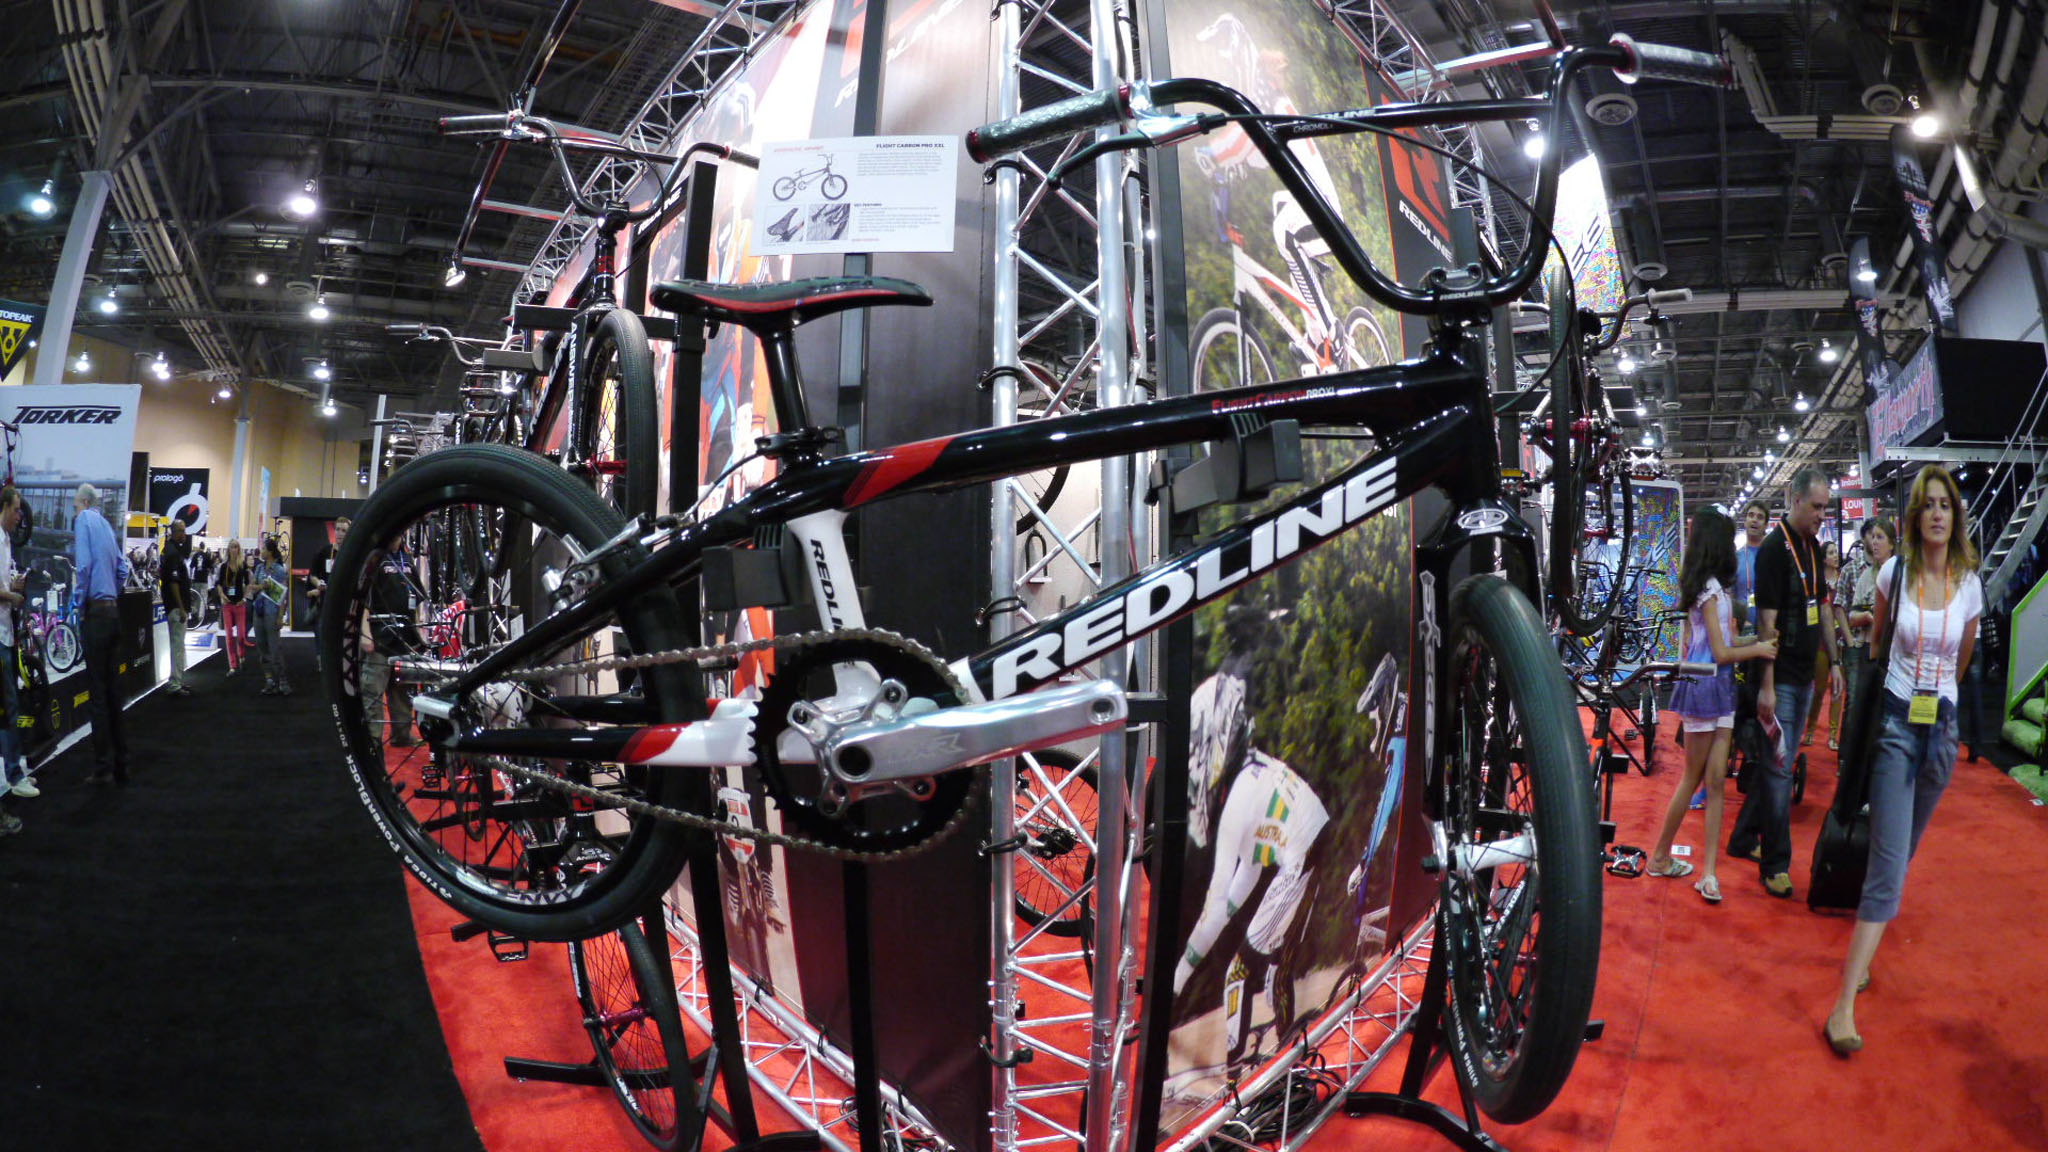 /photo/2012/0919/as_bmx_interbike17-1_2048.jpg